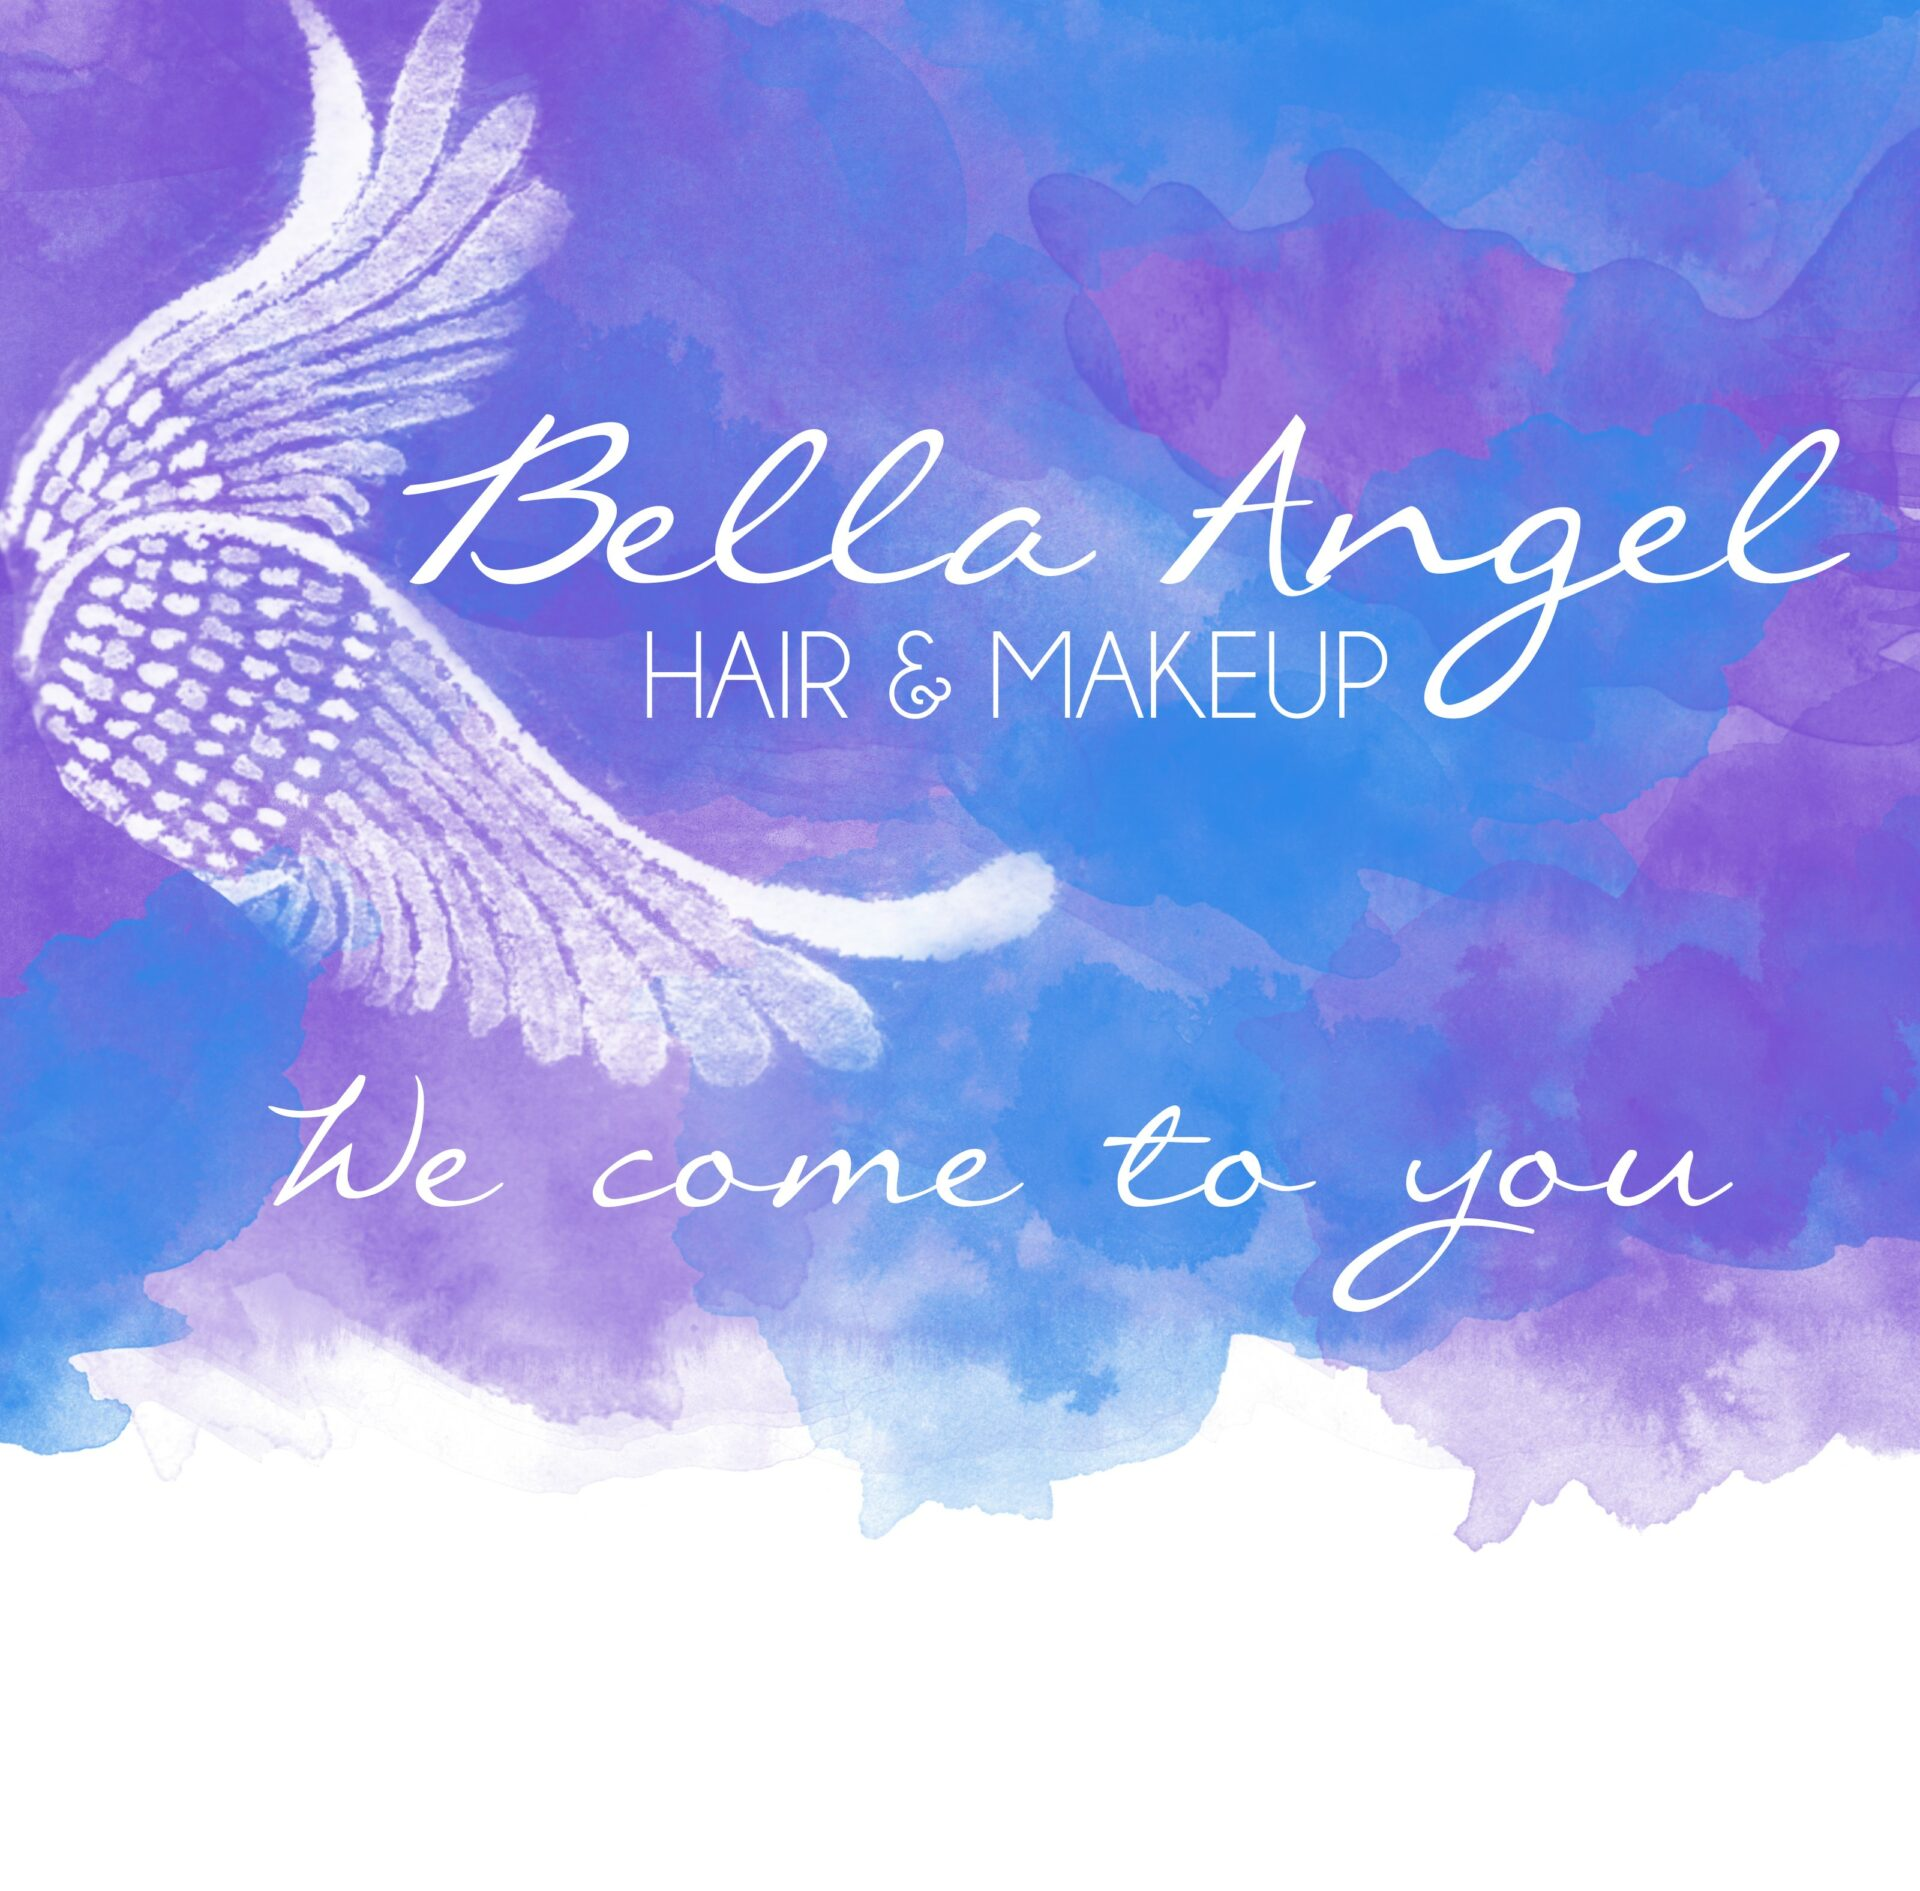 bella angel retractable banners-FINAL-removed box (3)